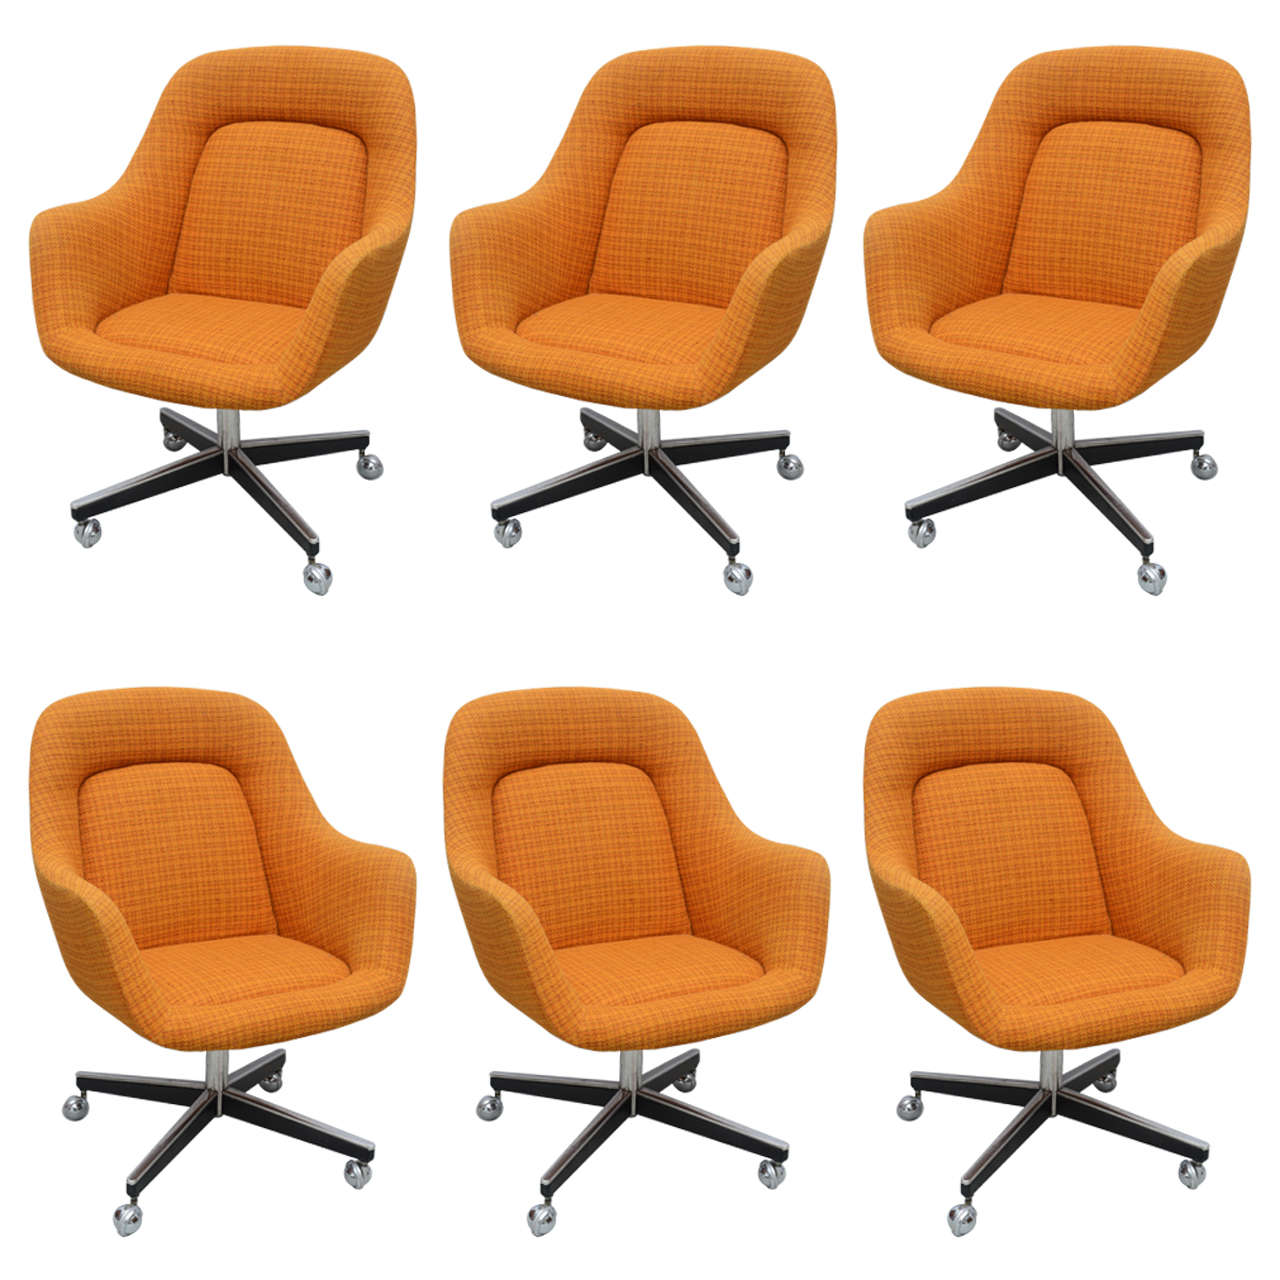 Max Pearson For Knoll Oversized Roller Chairs, 1970s For Sale